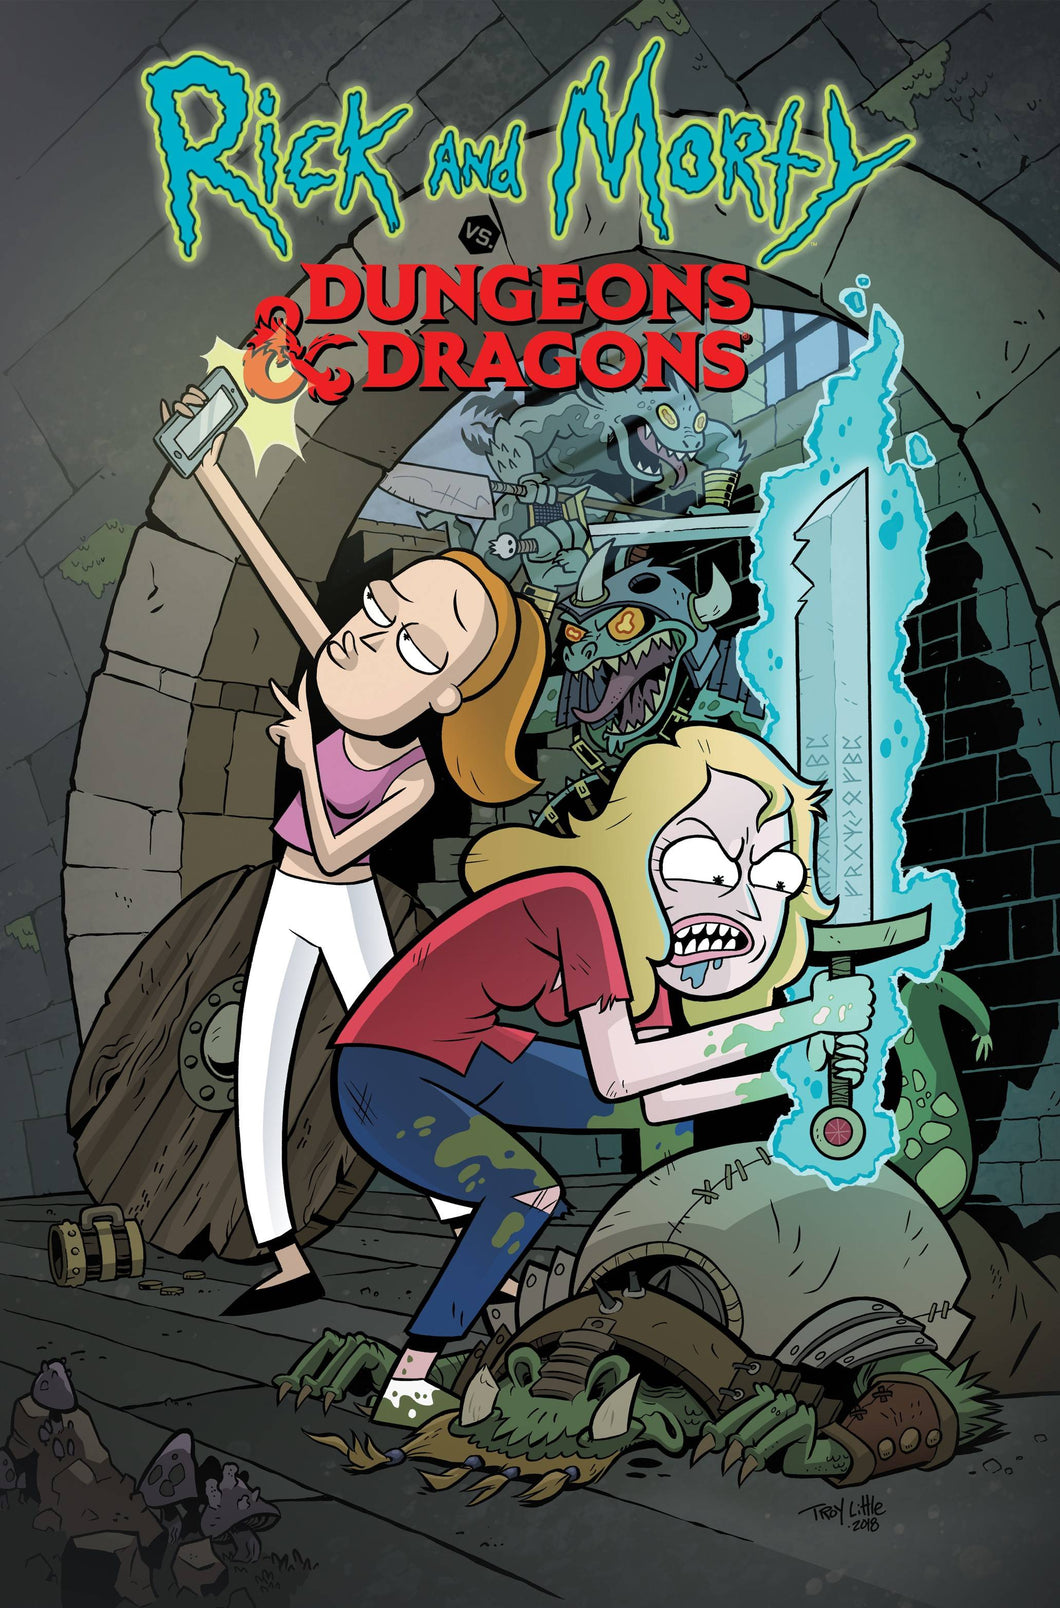 RICK & MORTY VS DUNGEONS & DRAGONS #2 (OF 4) CVR A LITTLE  FOC 09/03